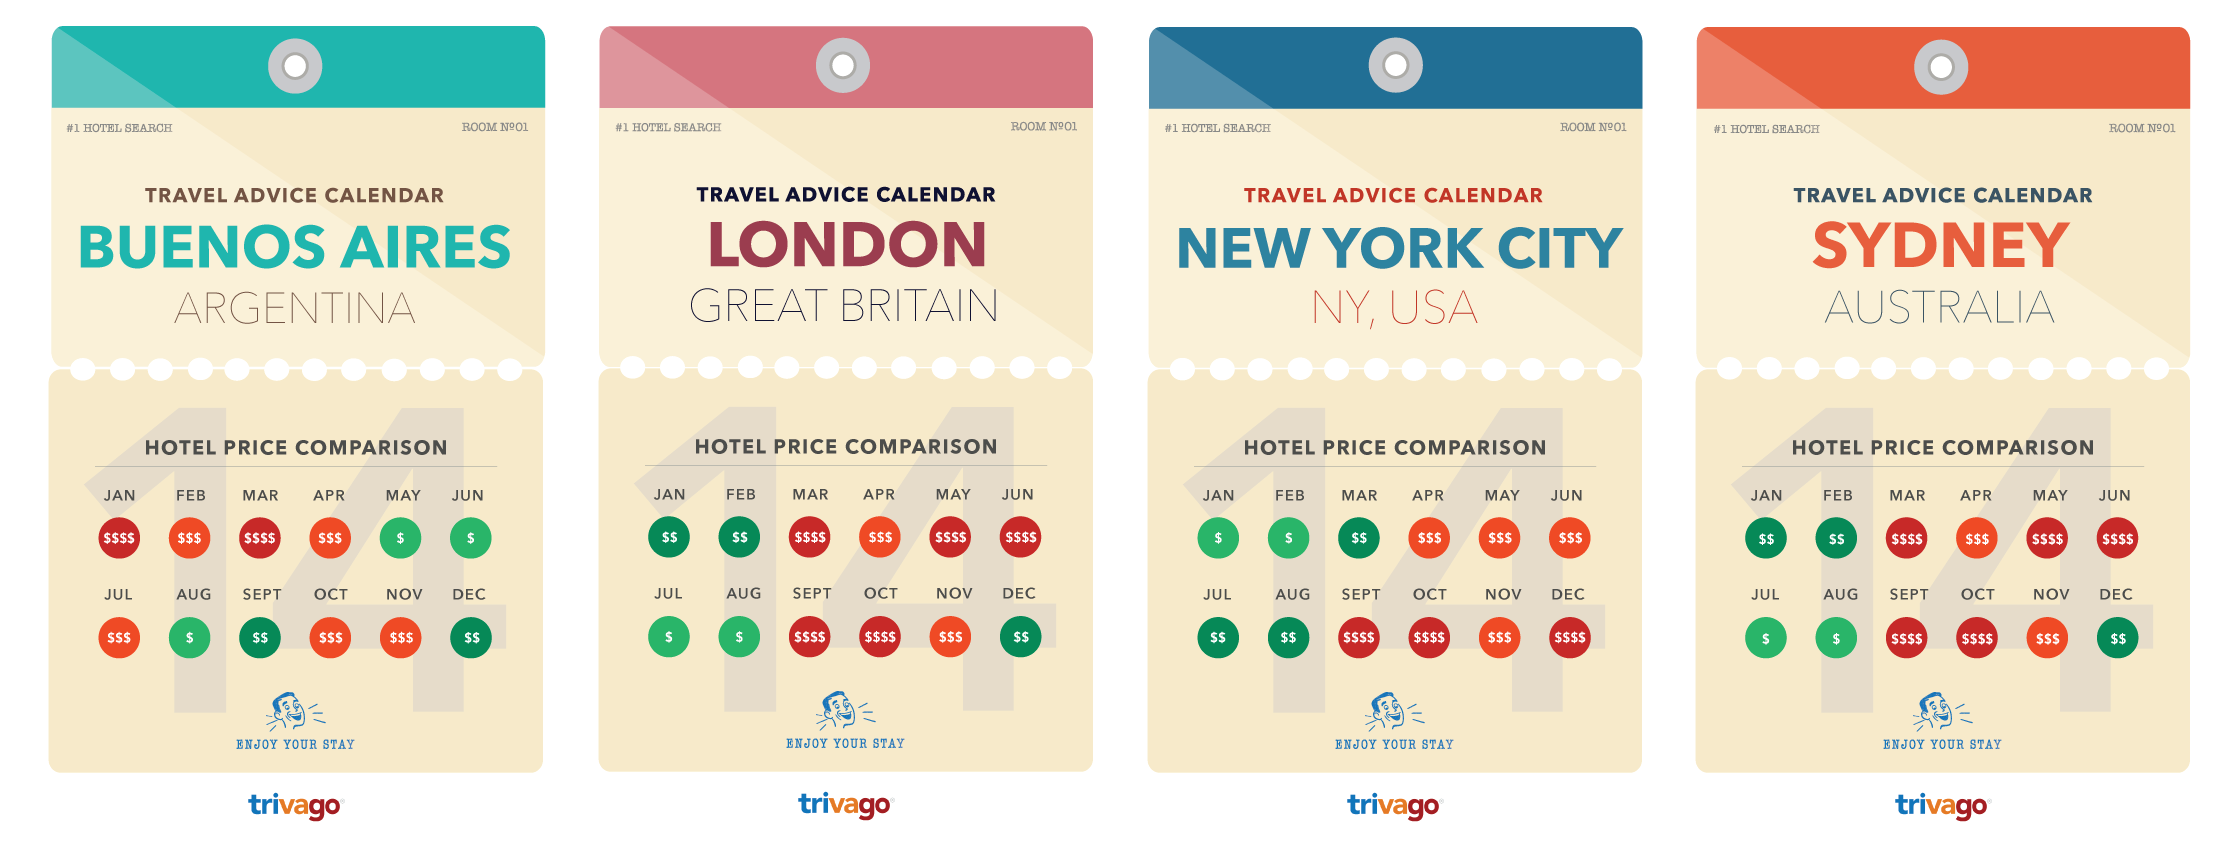 Trivago Hotel Price Index Tells The Least Most Expensive Months To Visit Various Travel